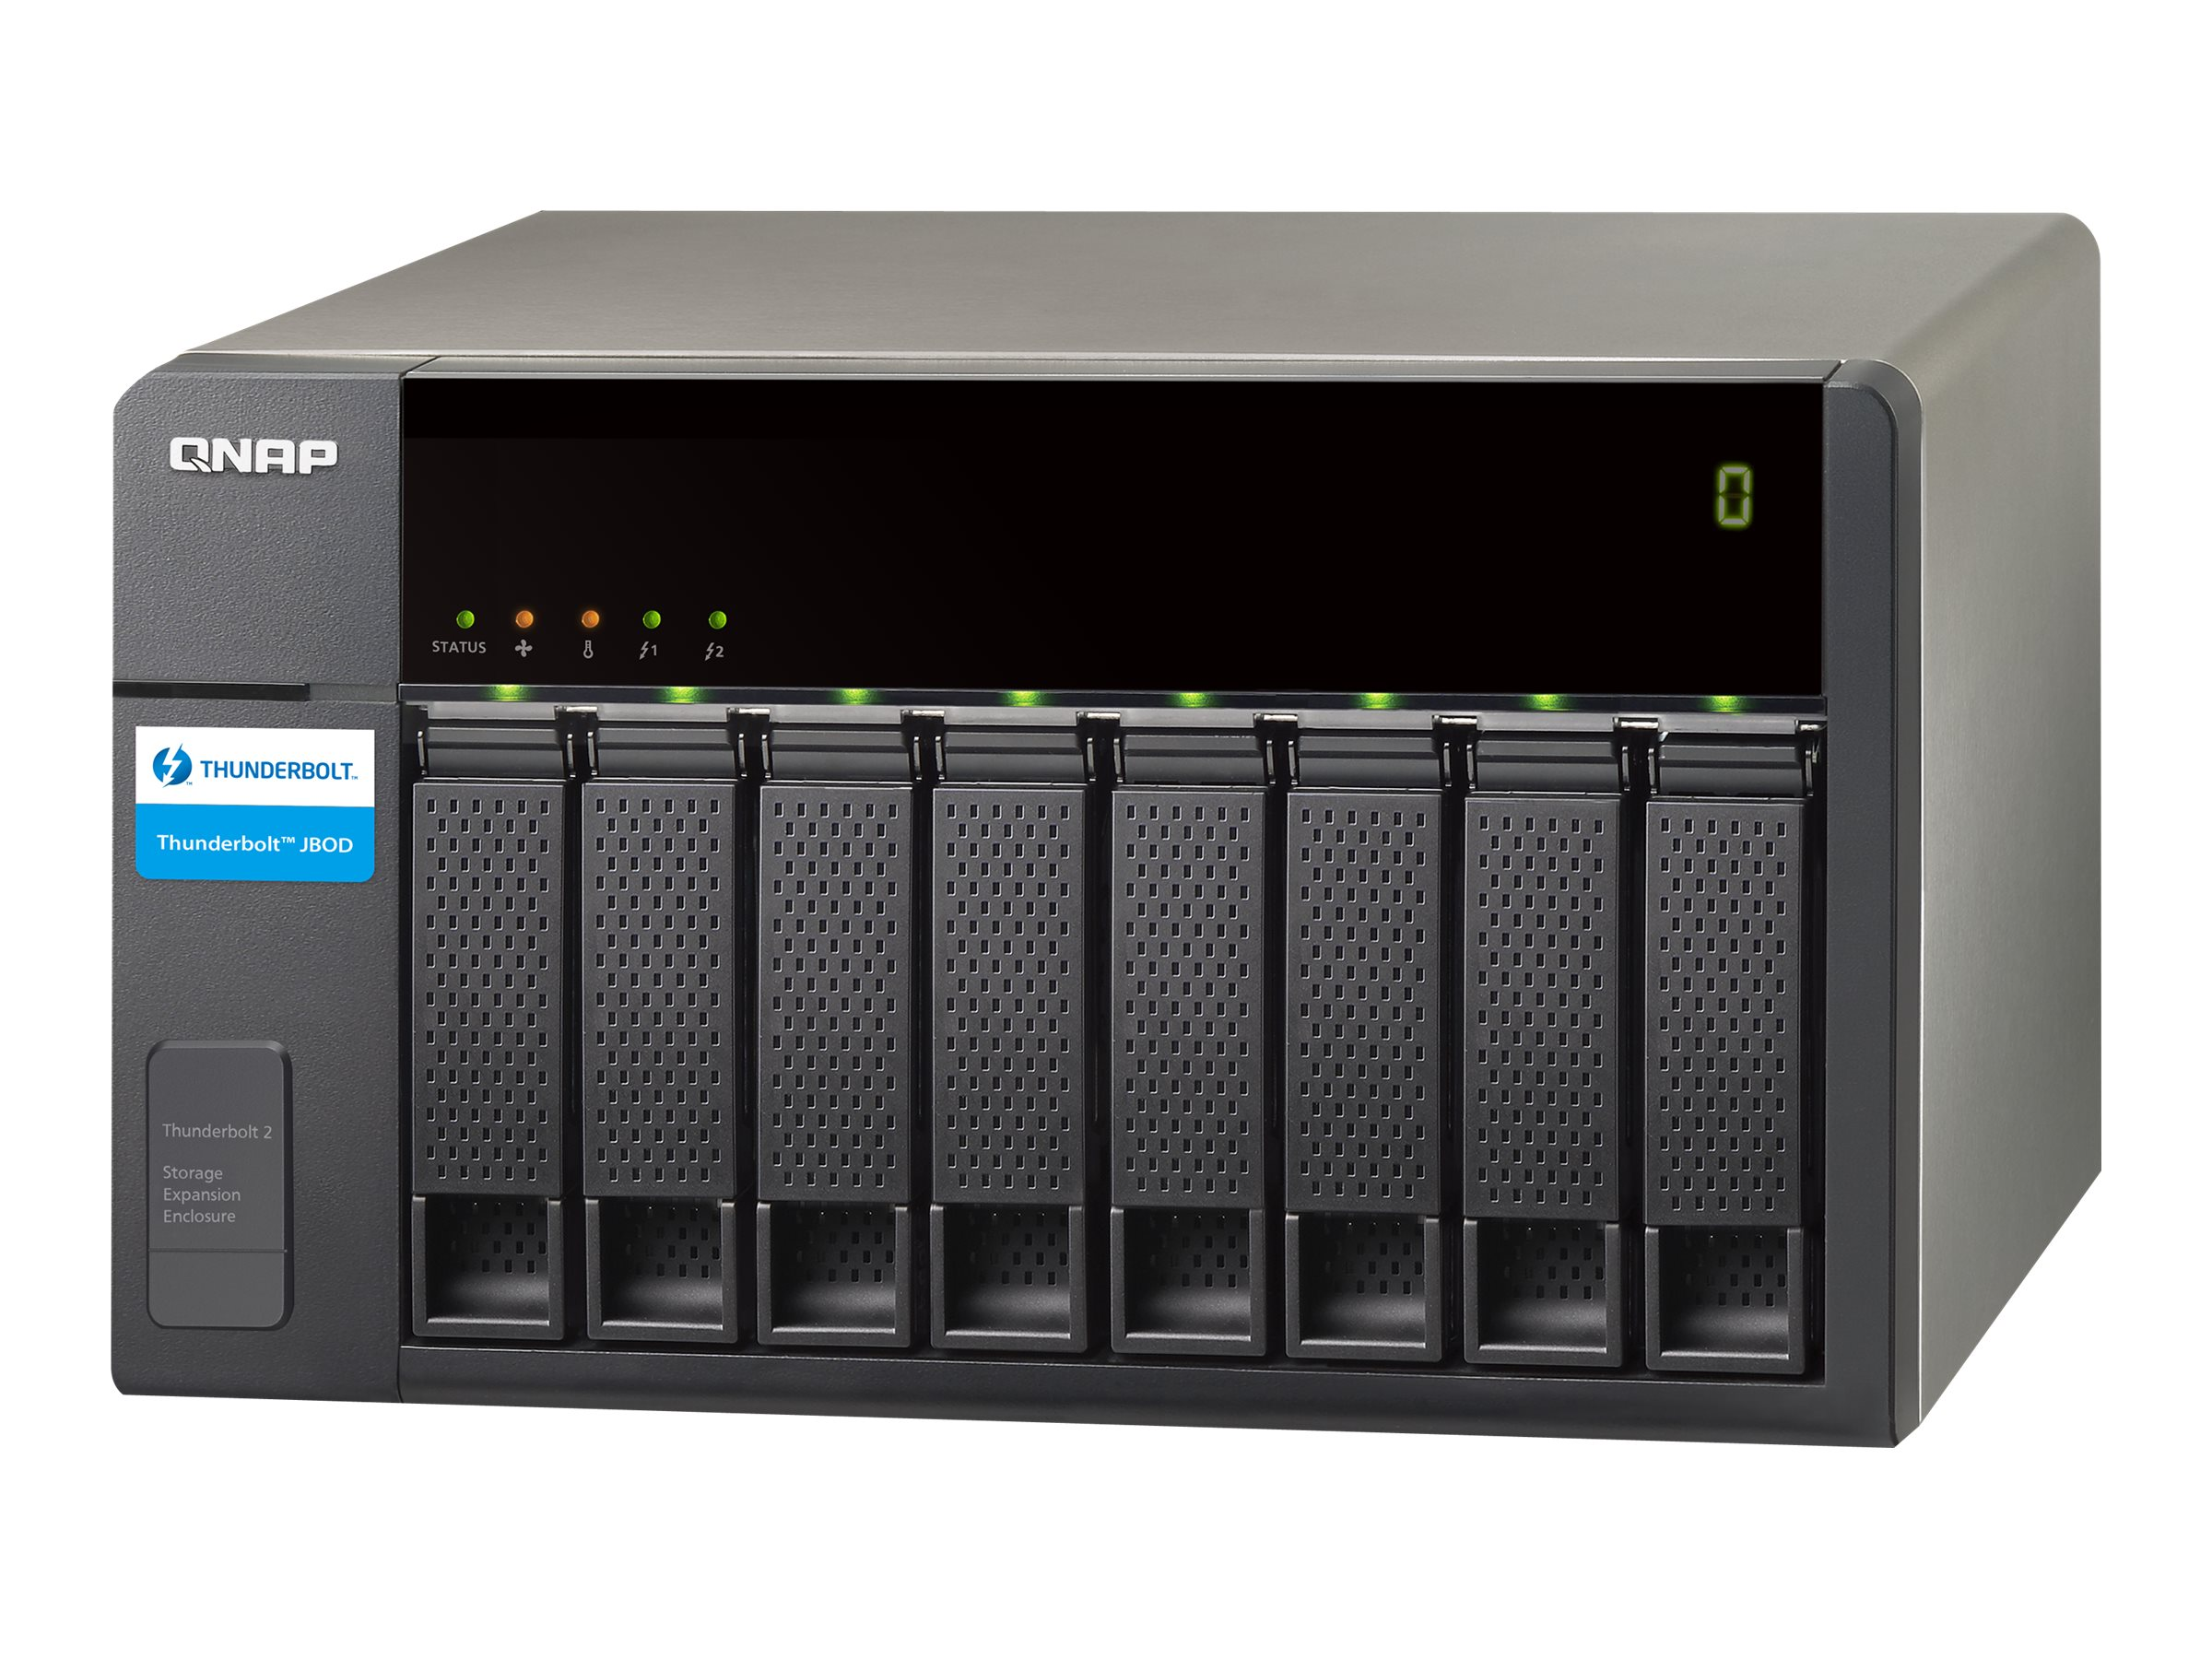 Qnap TVS871T Thunderbolt 2 8-Bay 2.5 3.5 2-port Serial Enclosure